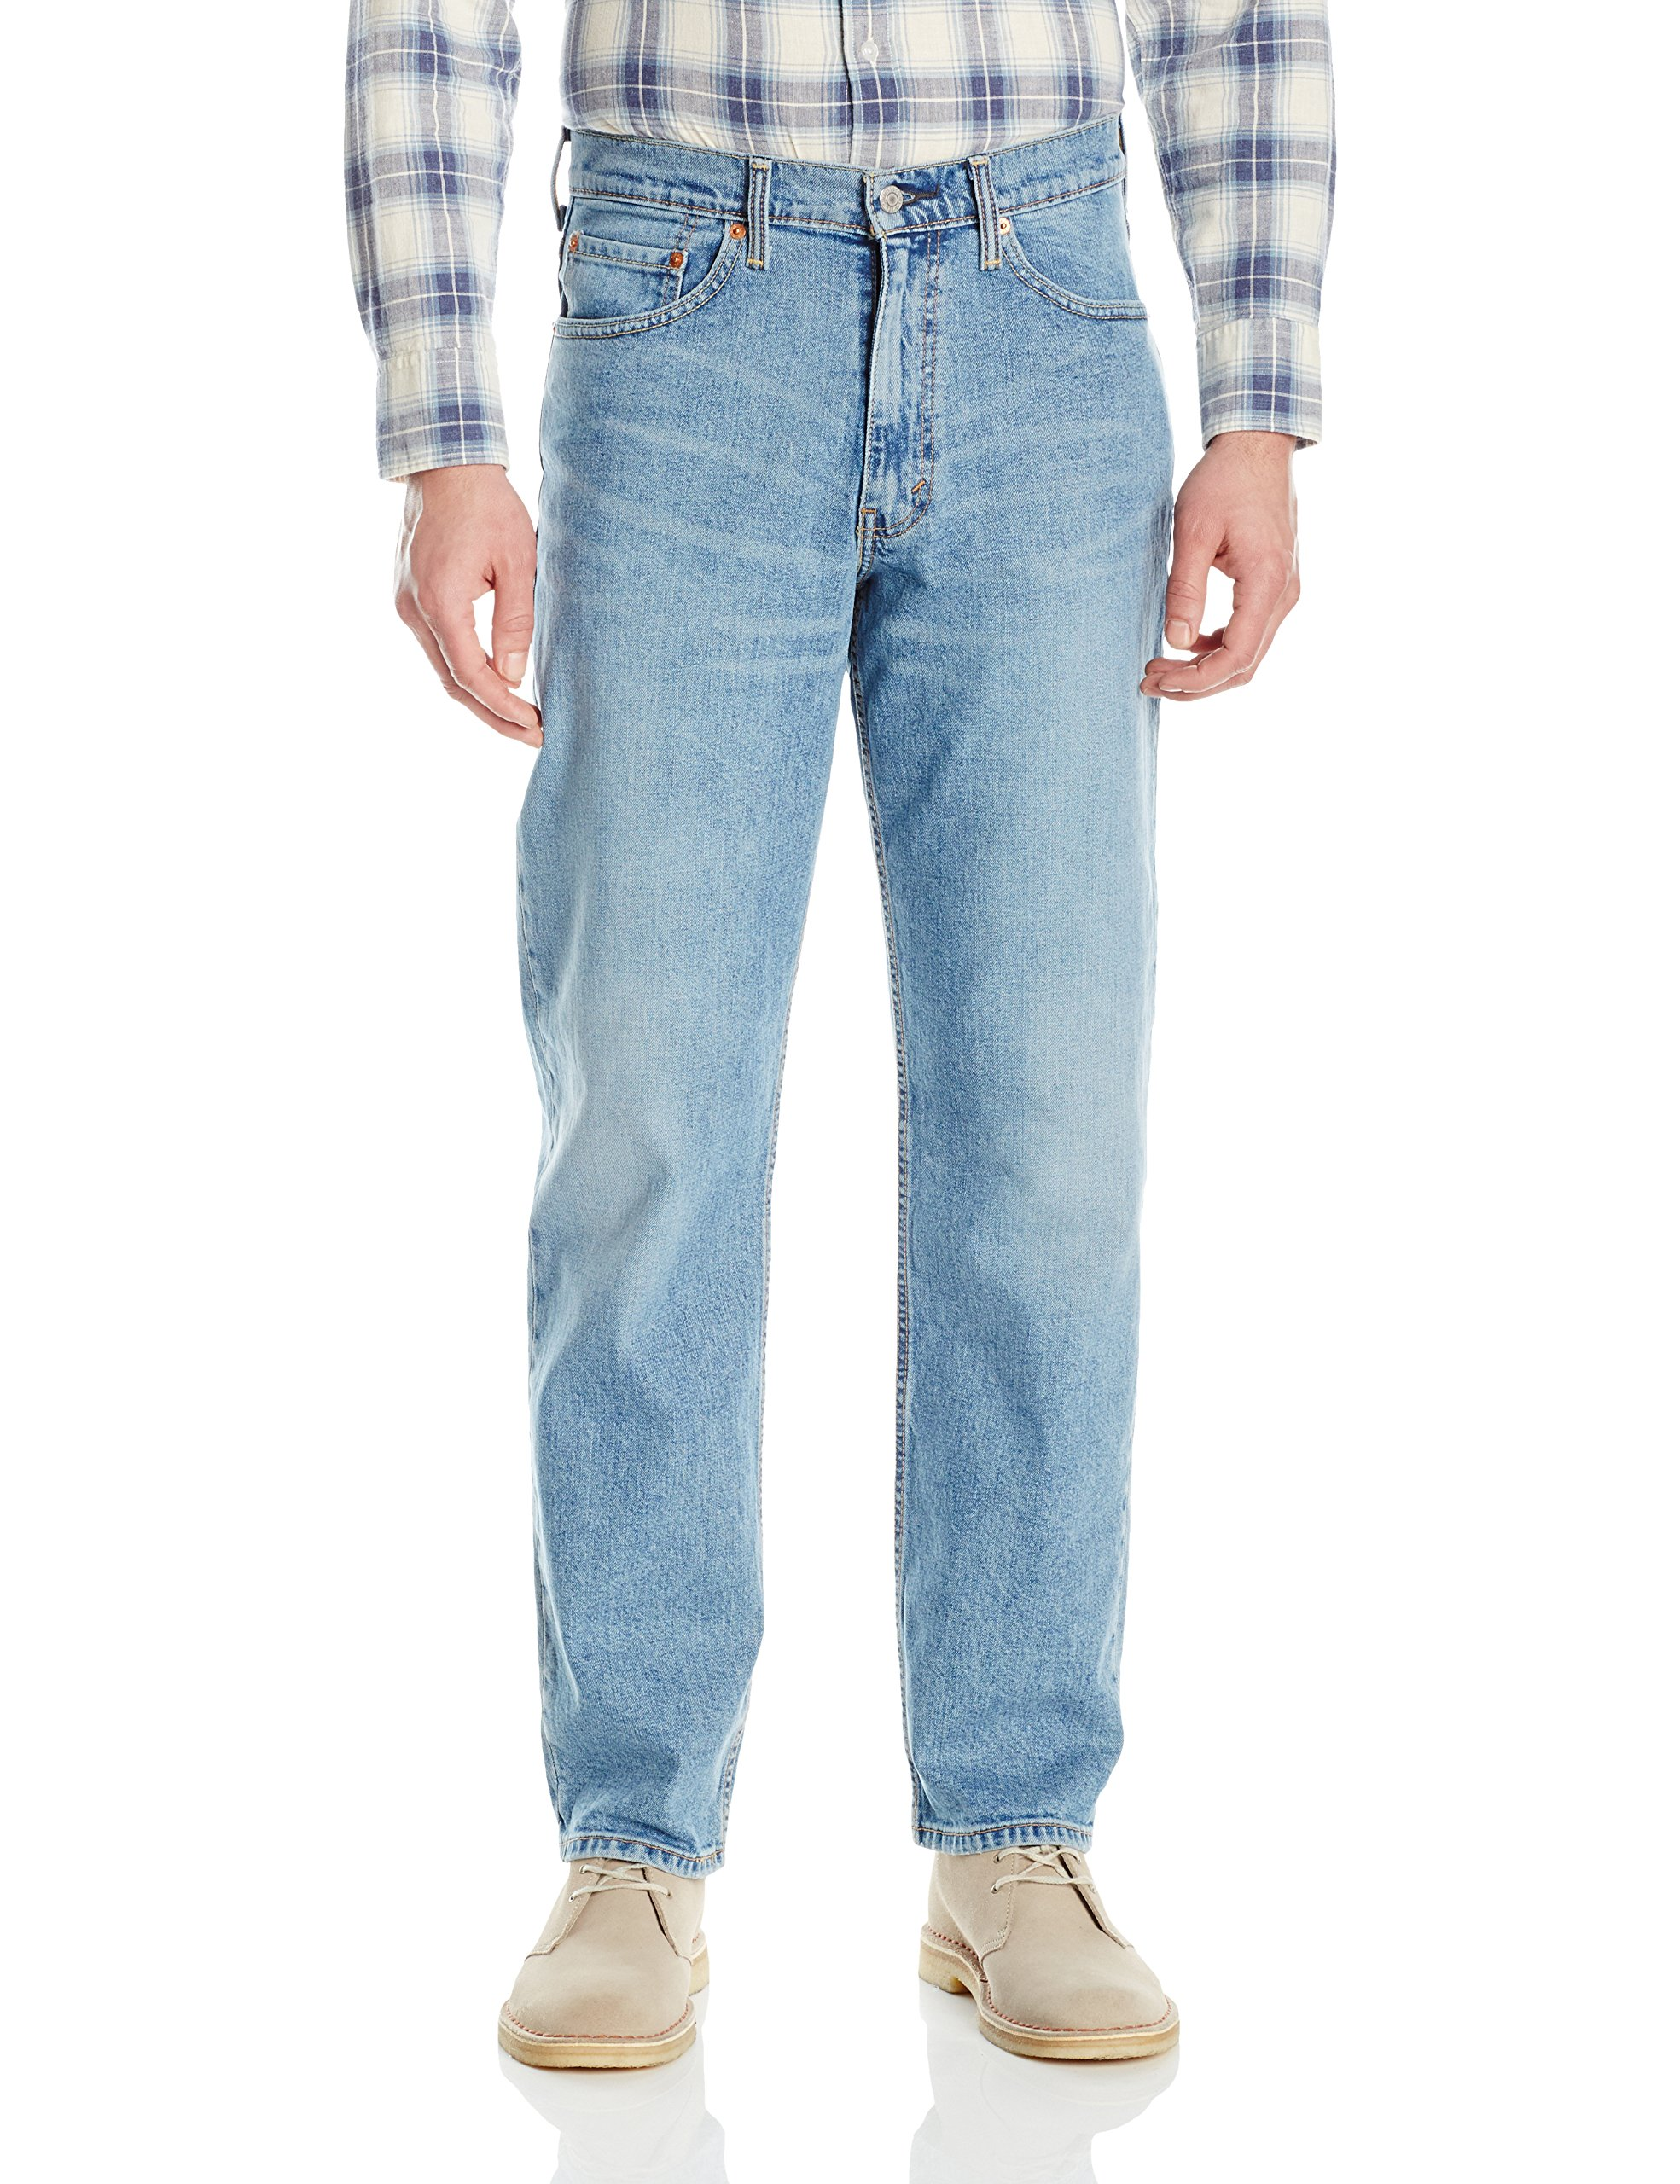 Levi's Men's 550 Relaxed-fit Jean, Clif - Stretch, 38X29